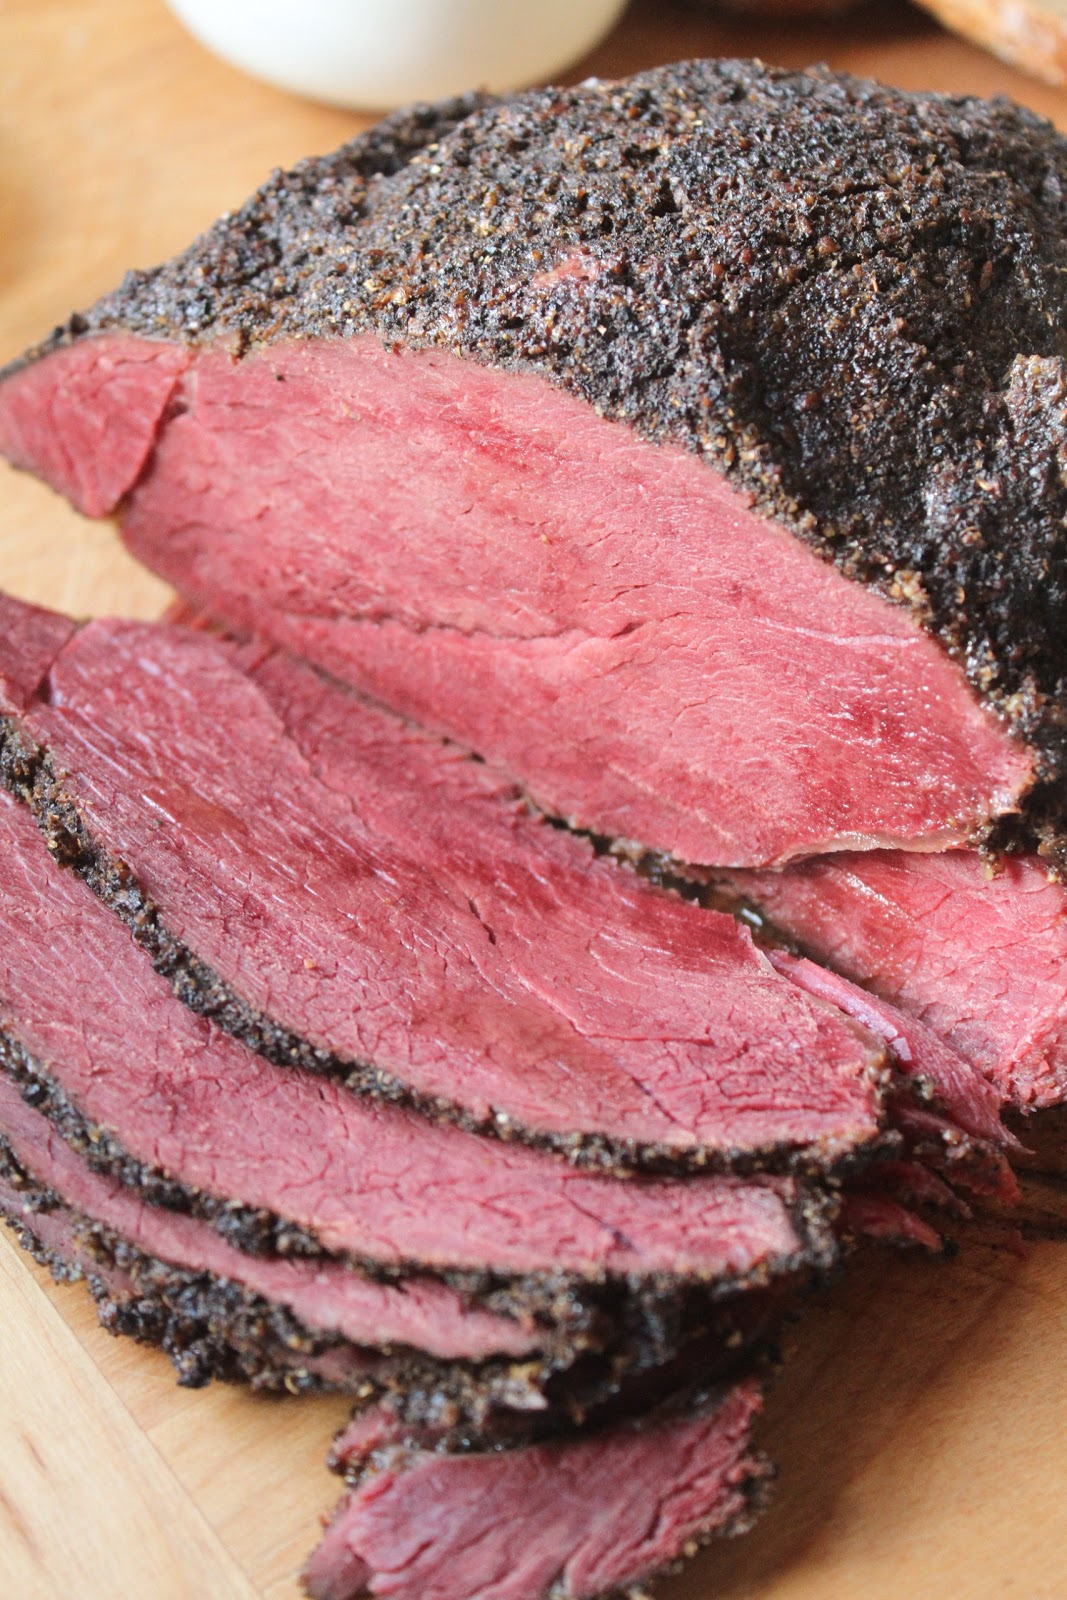 Makin' it with Frankie: Elk Pastrami